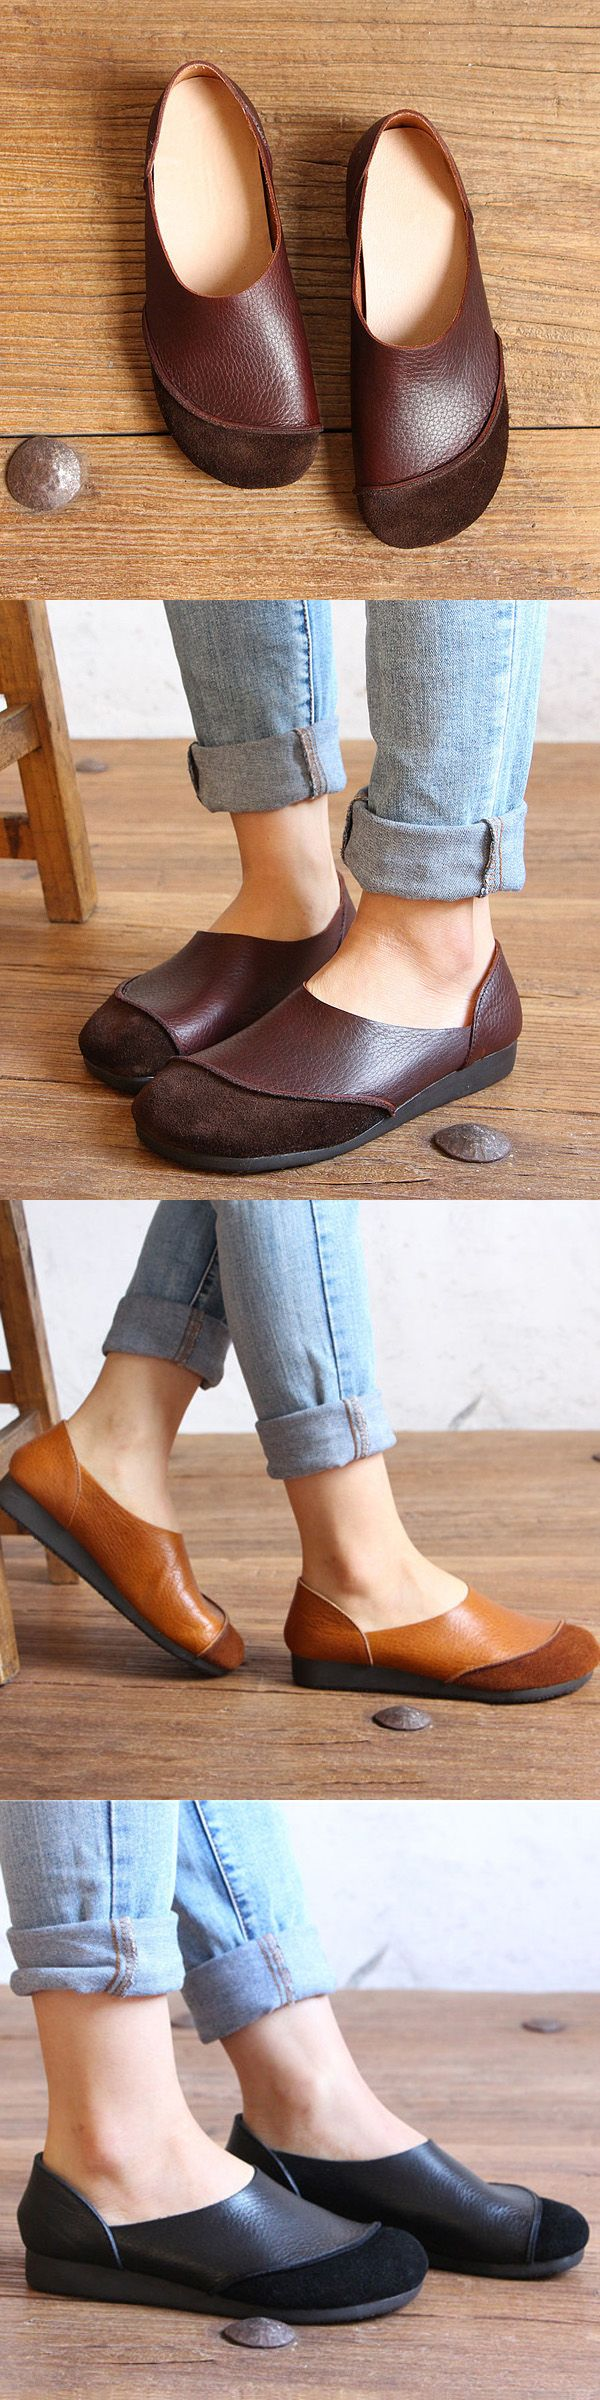 【 47% OFF】Socofy Genuine Leather Color Match Soft Flat Slip On Loafers_Soft Leather Flats_Genuine Leather Shoes For Woman